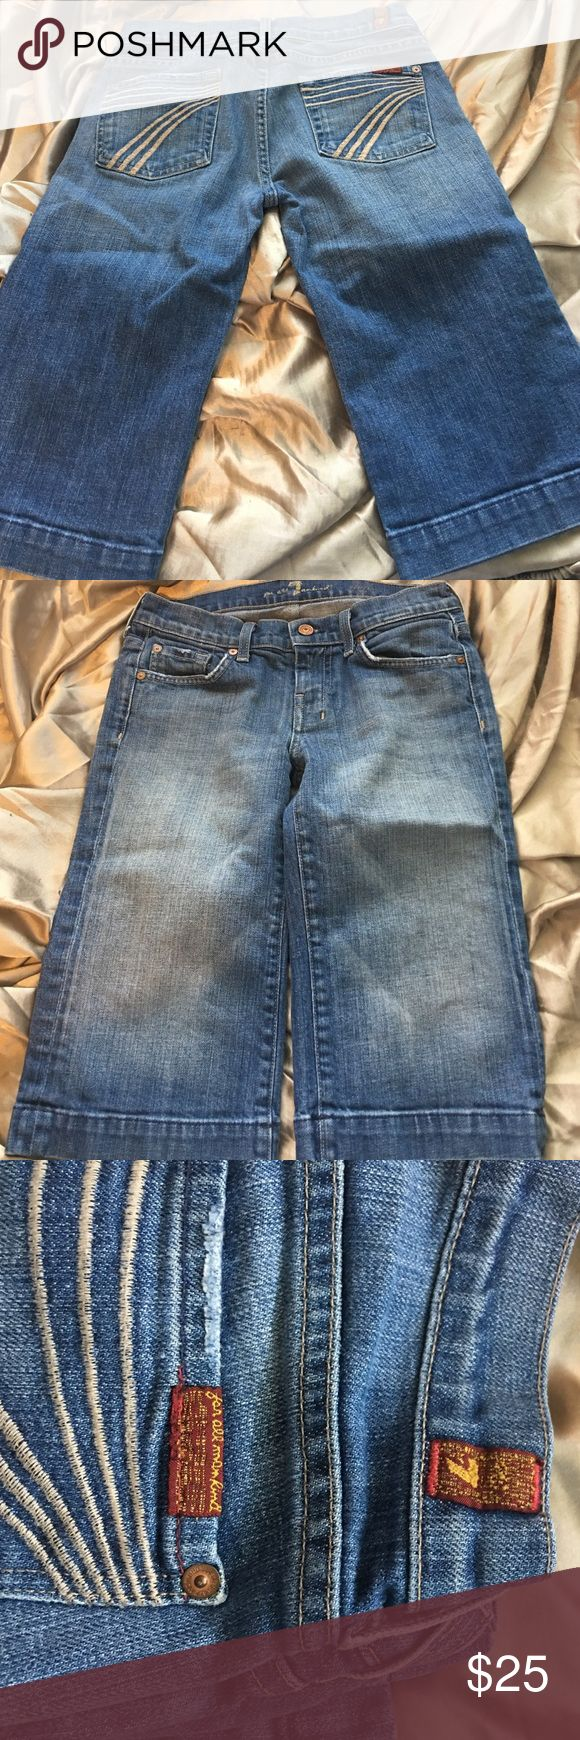 Seven for all mankind jeans Seven for all mankind shorts/Capri jeans used 7 For All Mankind Shorts Jean Shorts